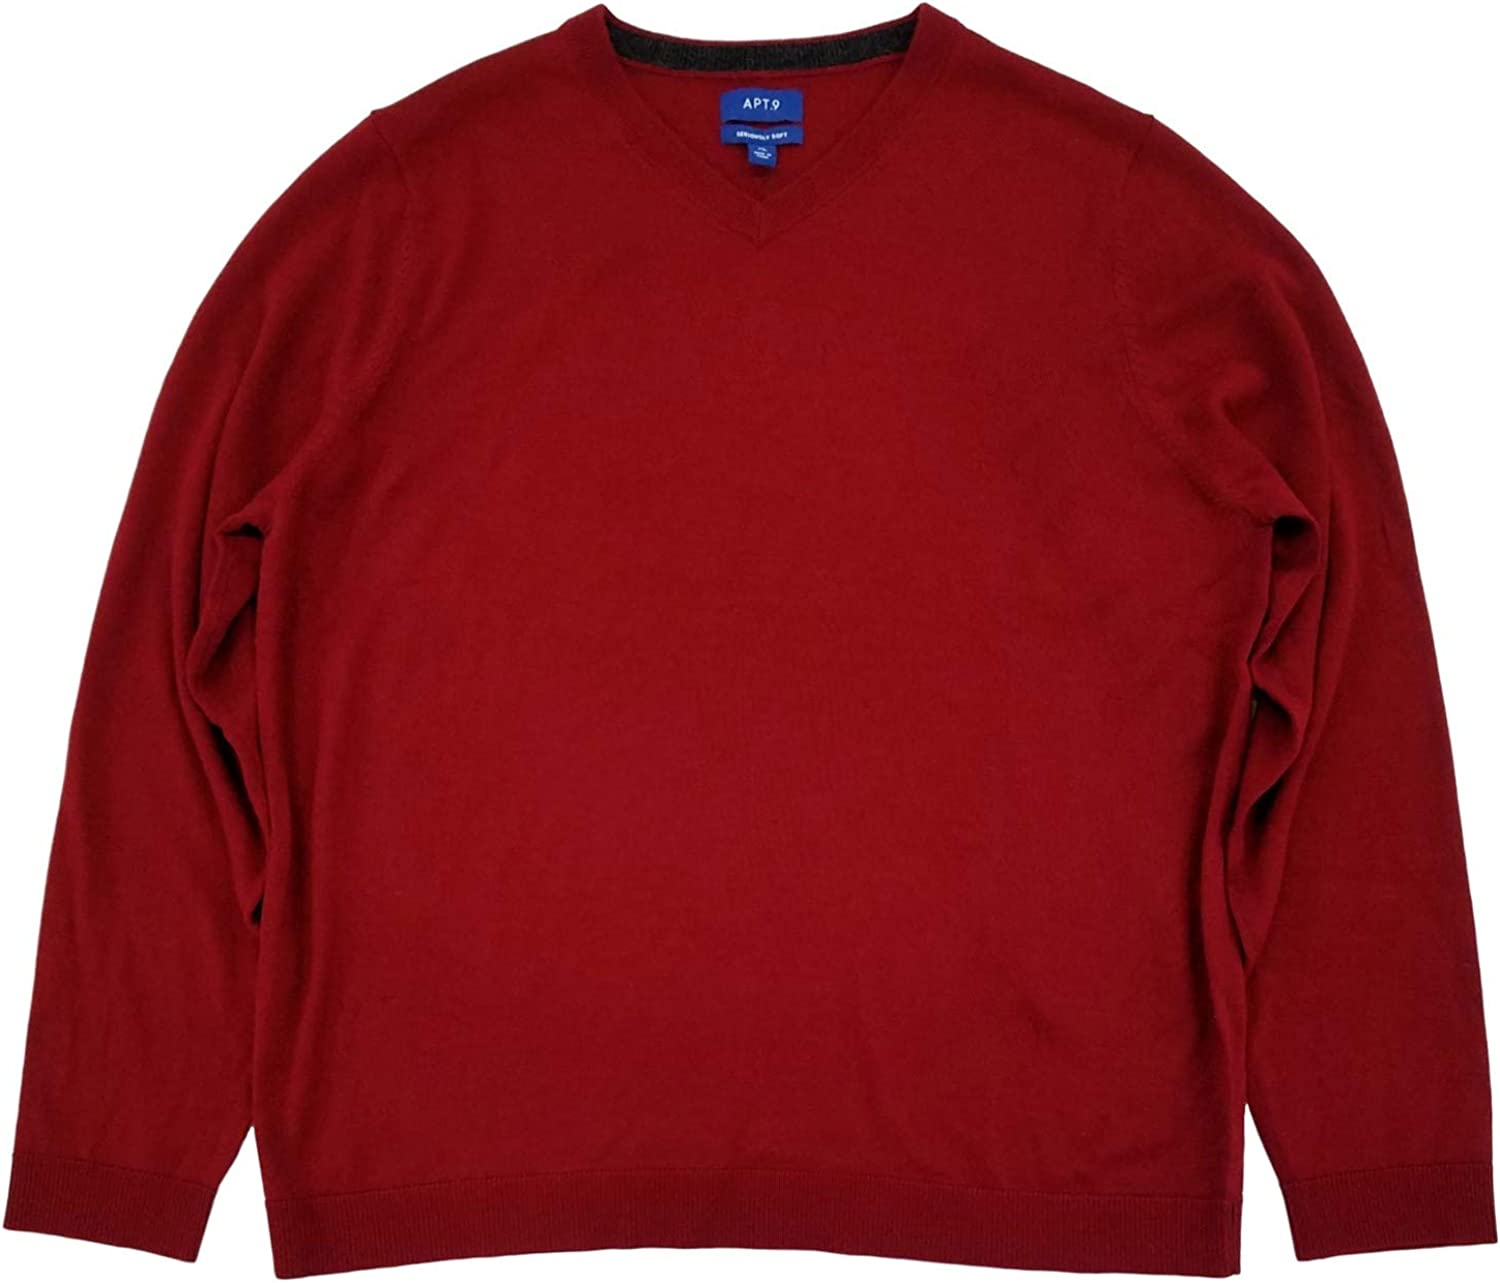 Mens Max 59% OFF Red Soft Merino Don't miss the campaign Sleeve Long V-Neck Sweater